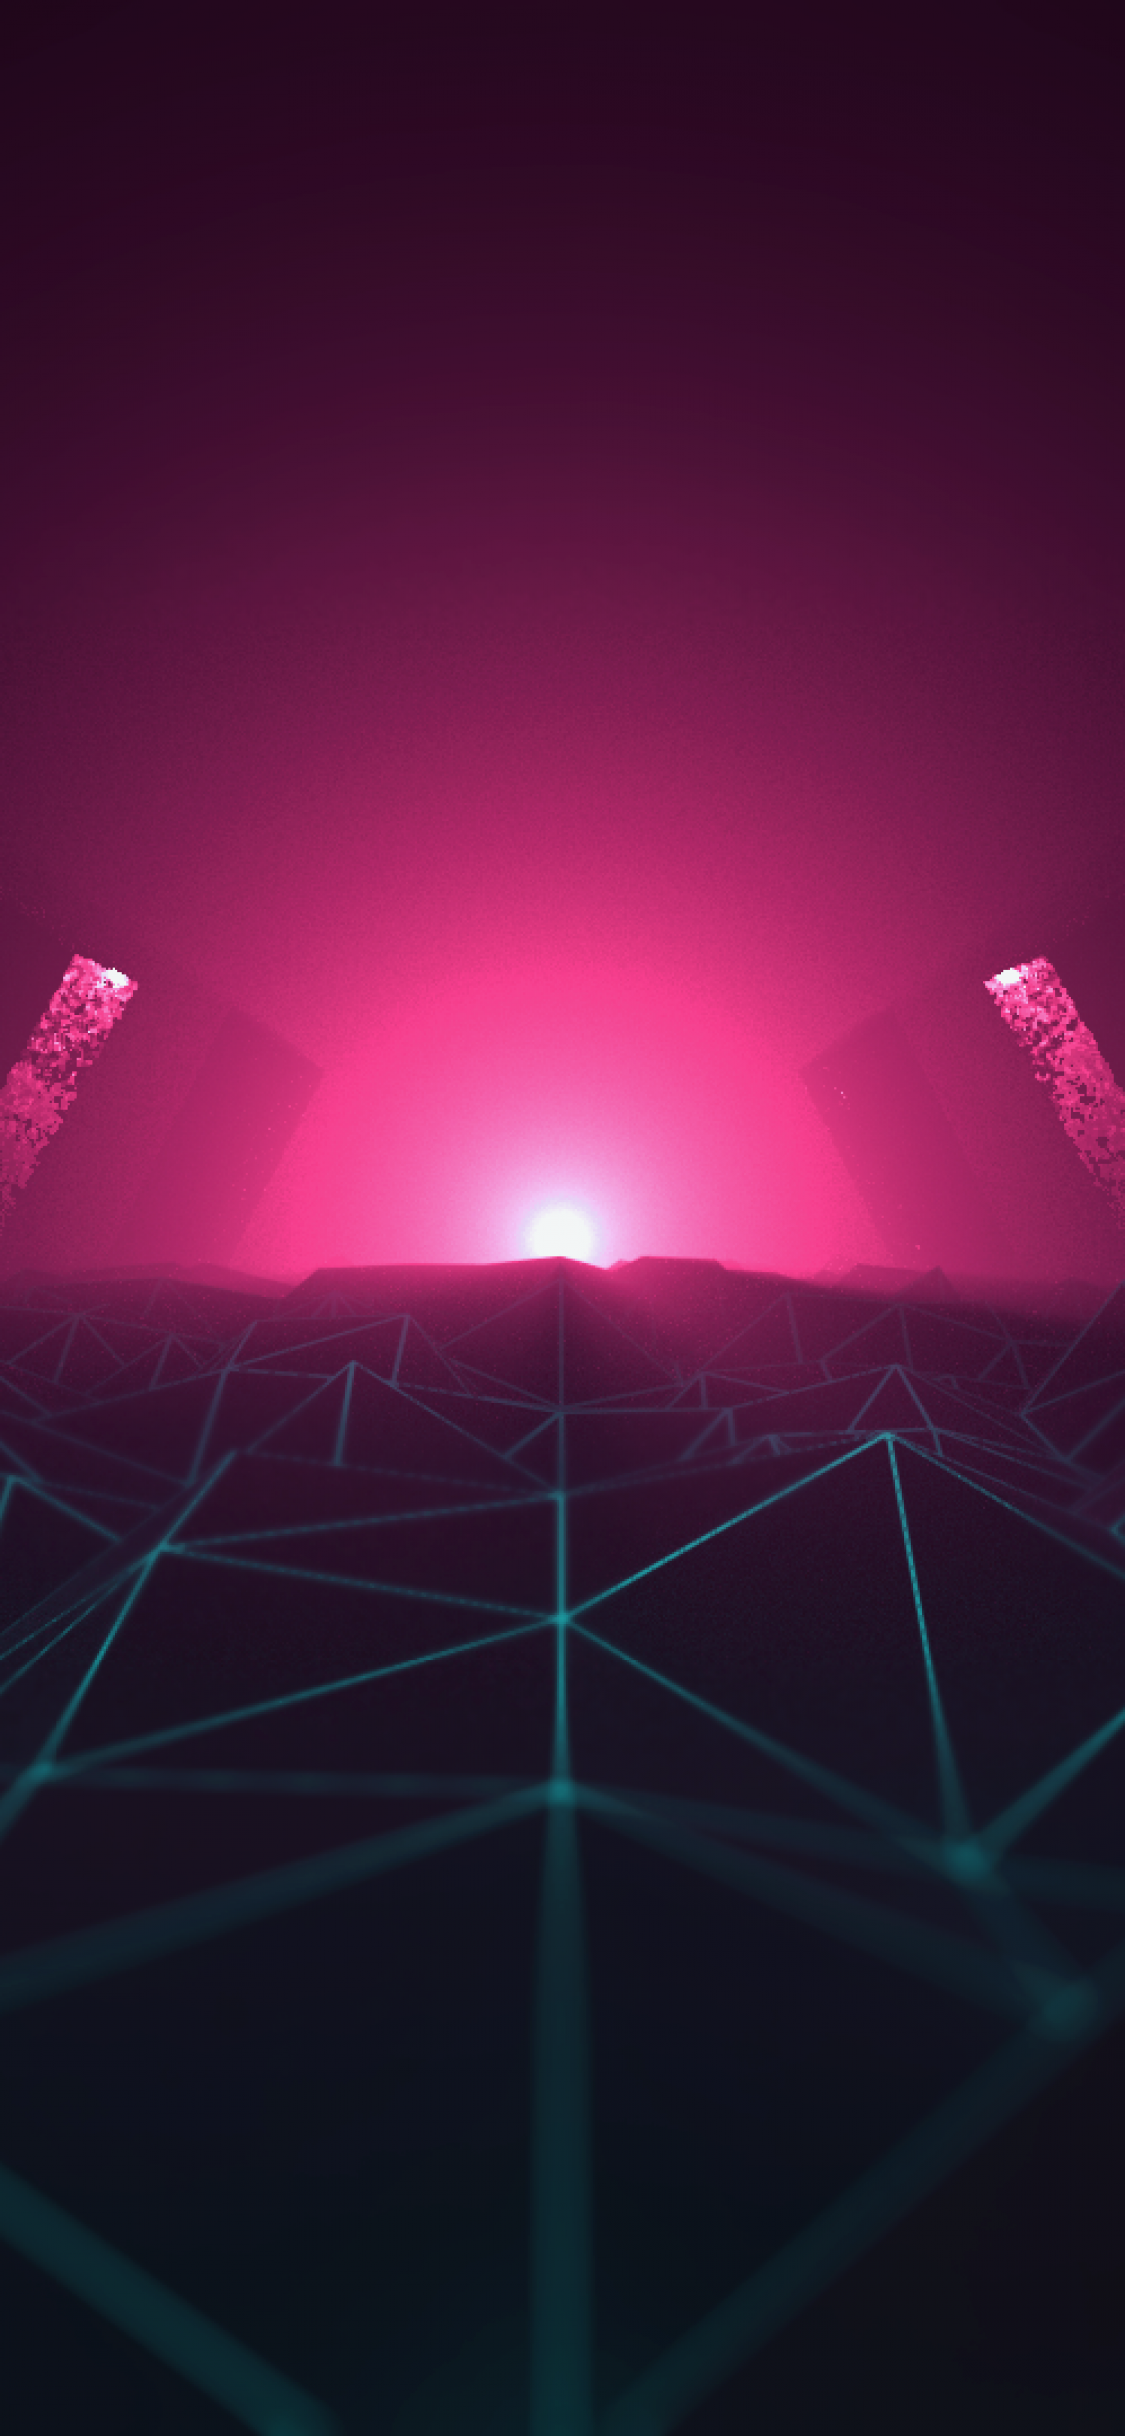 Synthwave Iphone Wallpapers Top Free Synthwave Iphone Backgrounds Wallpaperaccess